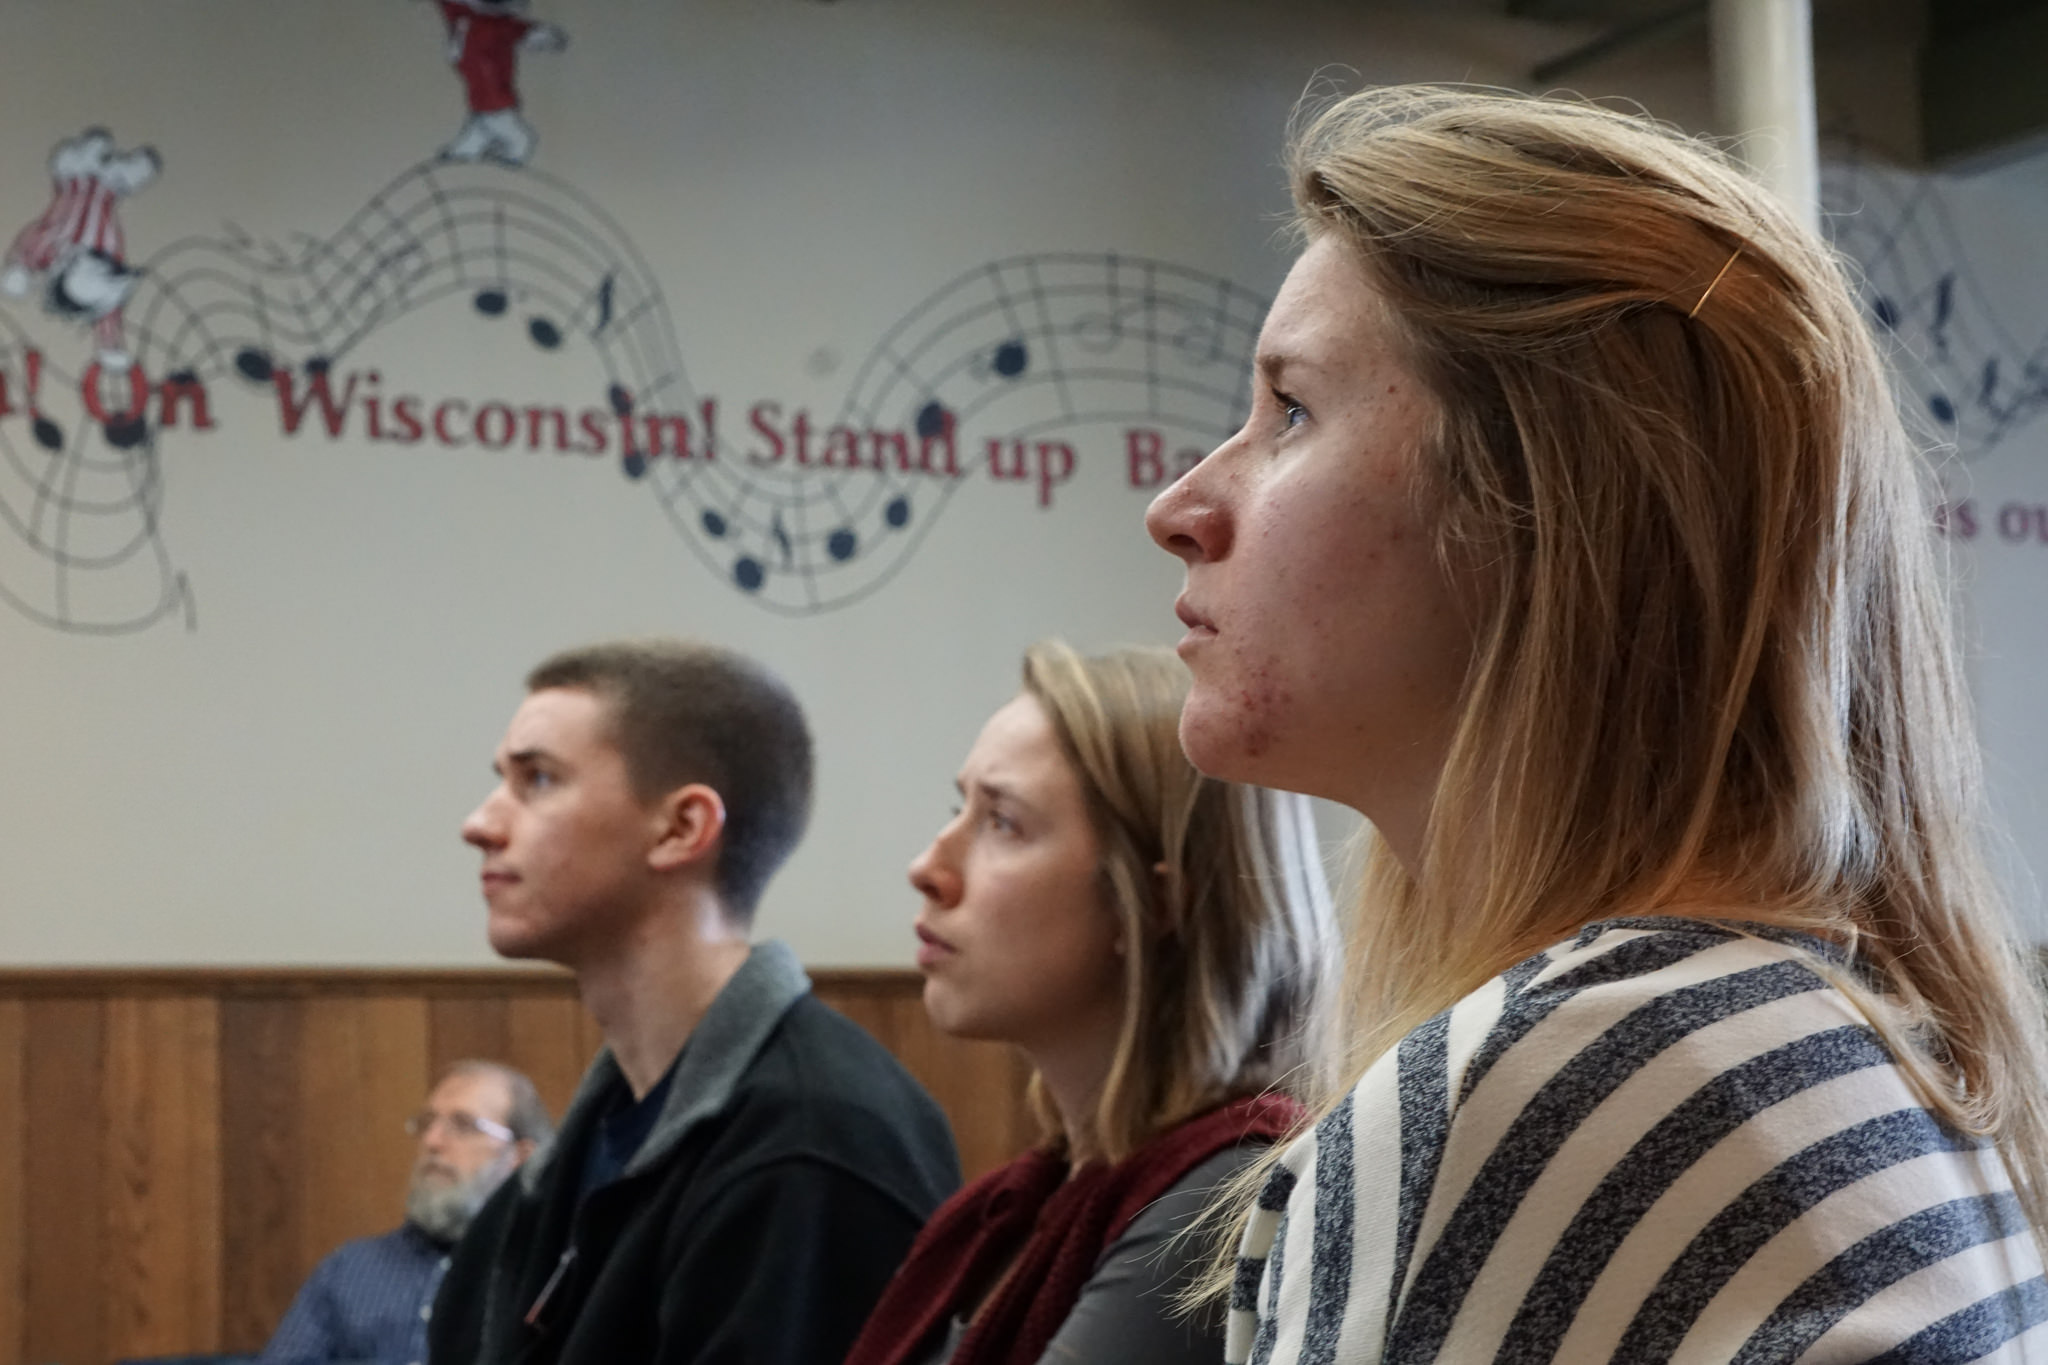 Students at University of Wisconsin-Madison watch the closing ceremony of their teach-in after a weekend of workshops, discussions, and debates about the Next System. (Photo: Michelle Stearn)